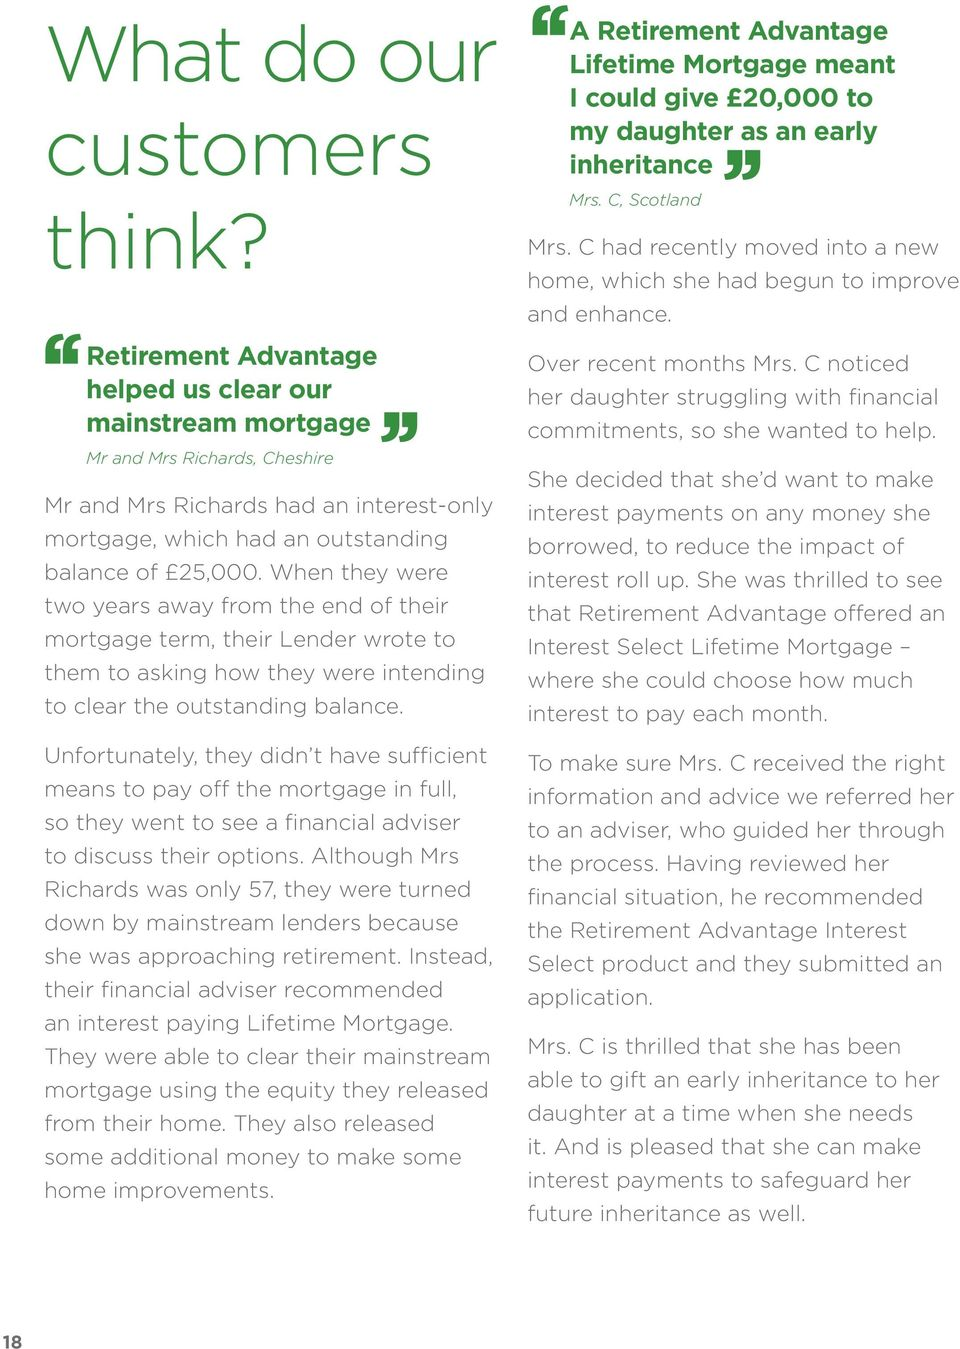 When they were two years away from the end of their mortgage term, their Lender wrote to them to asking how they were intending to clear the outstanding balance.